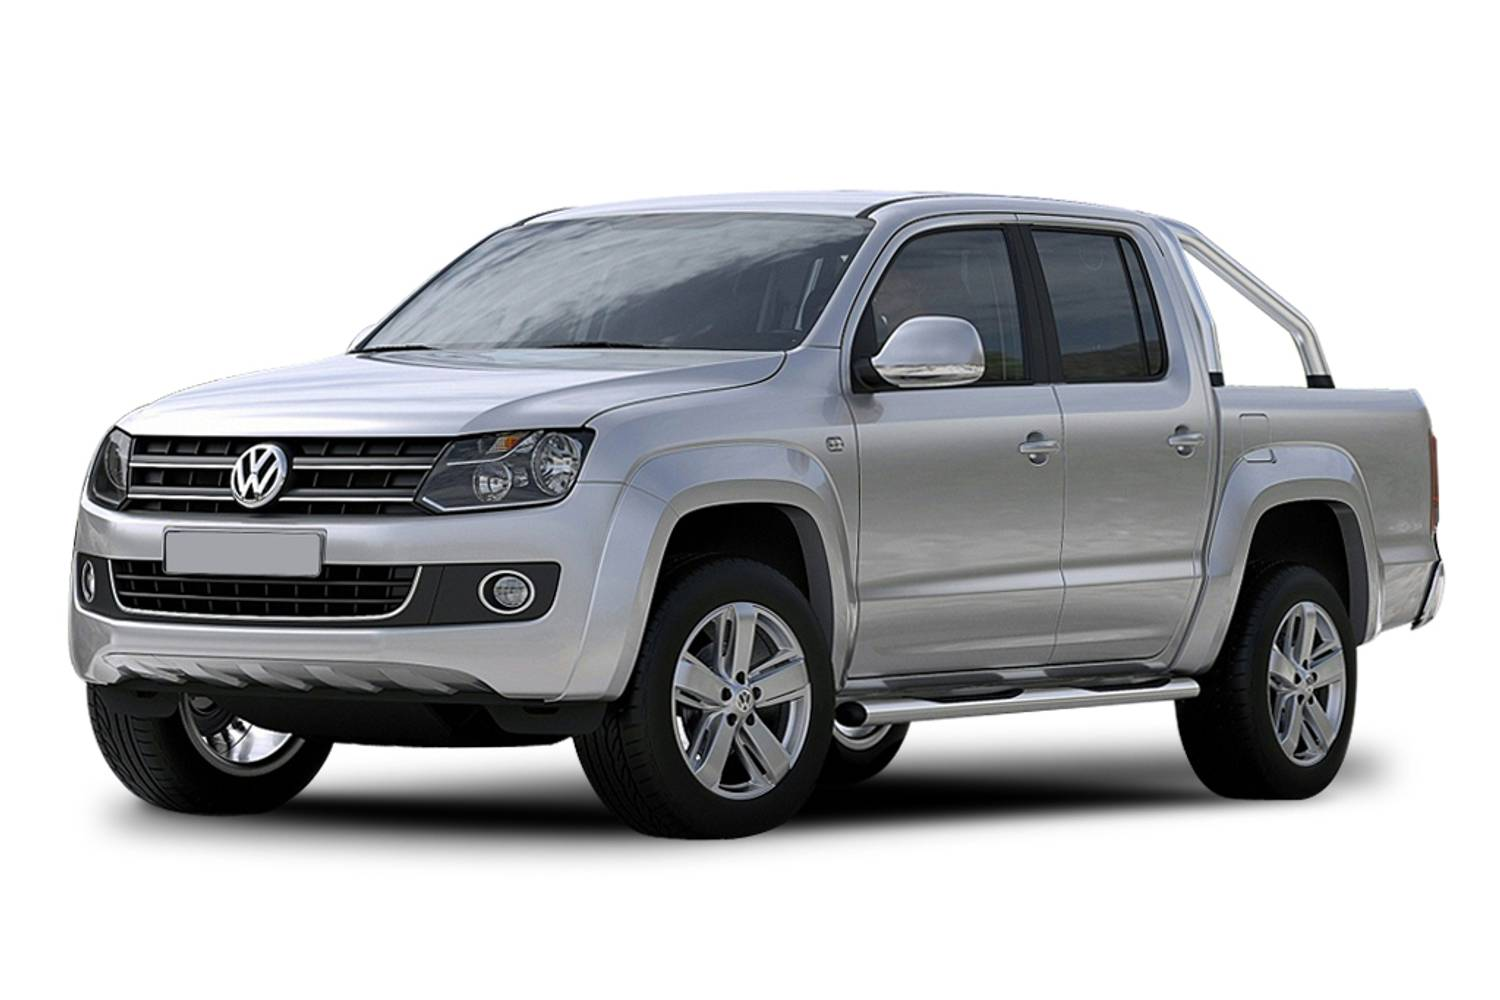 Volkswagen Amarok A32 D/Cab Pick Up 2.0